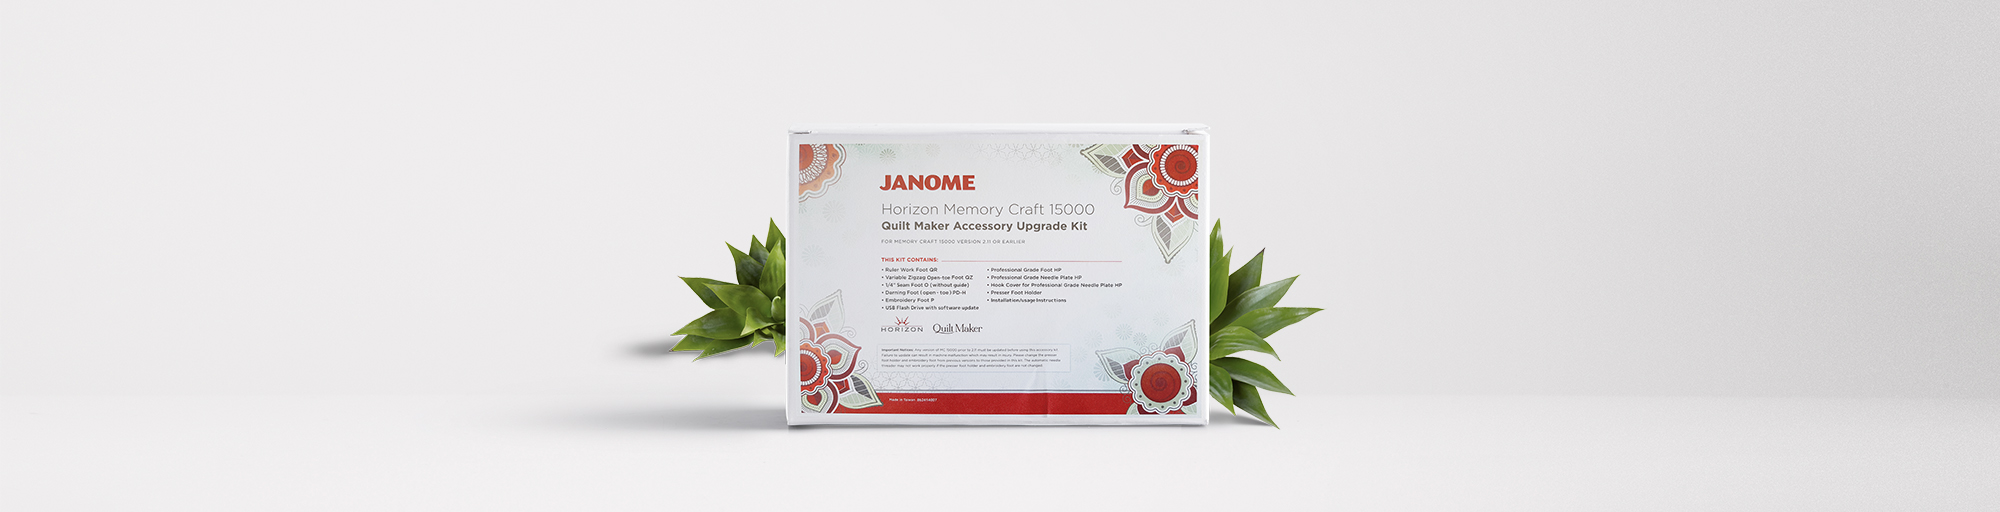 UPGRADE Your Janome MC15000 to the New Quilt Maker MC15000